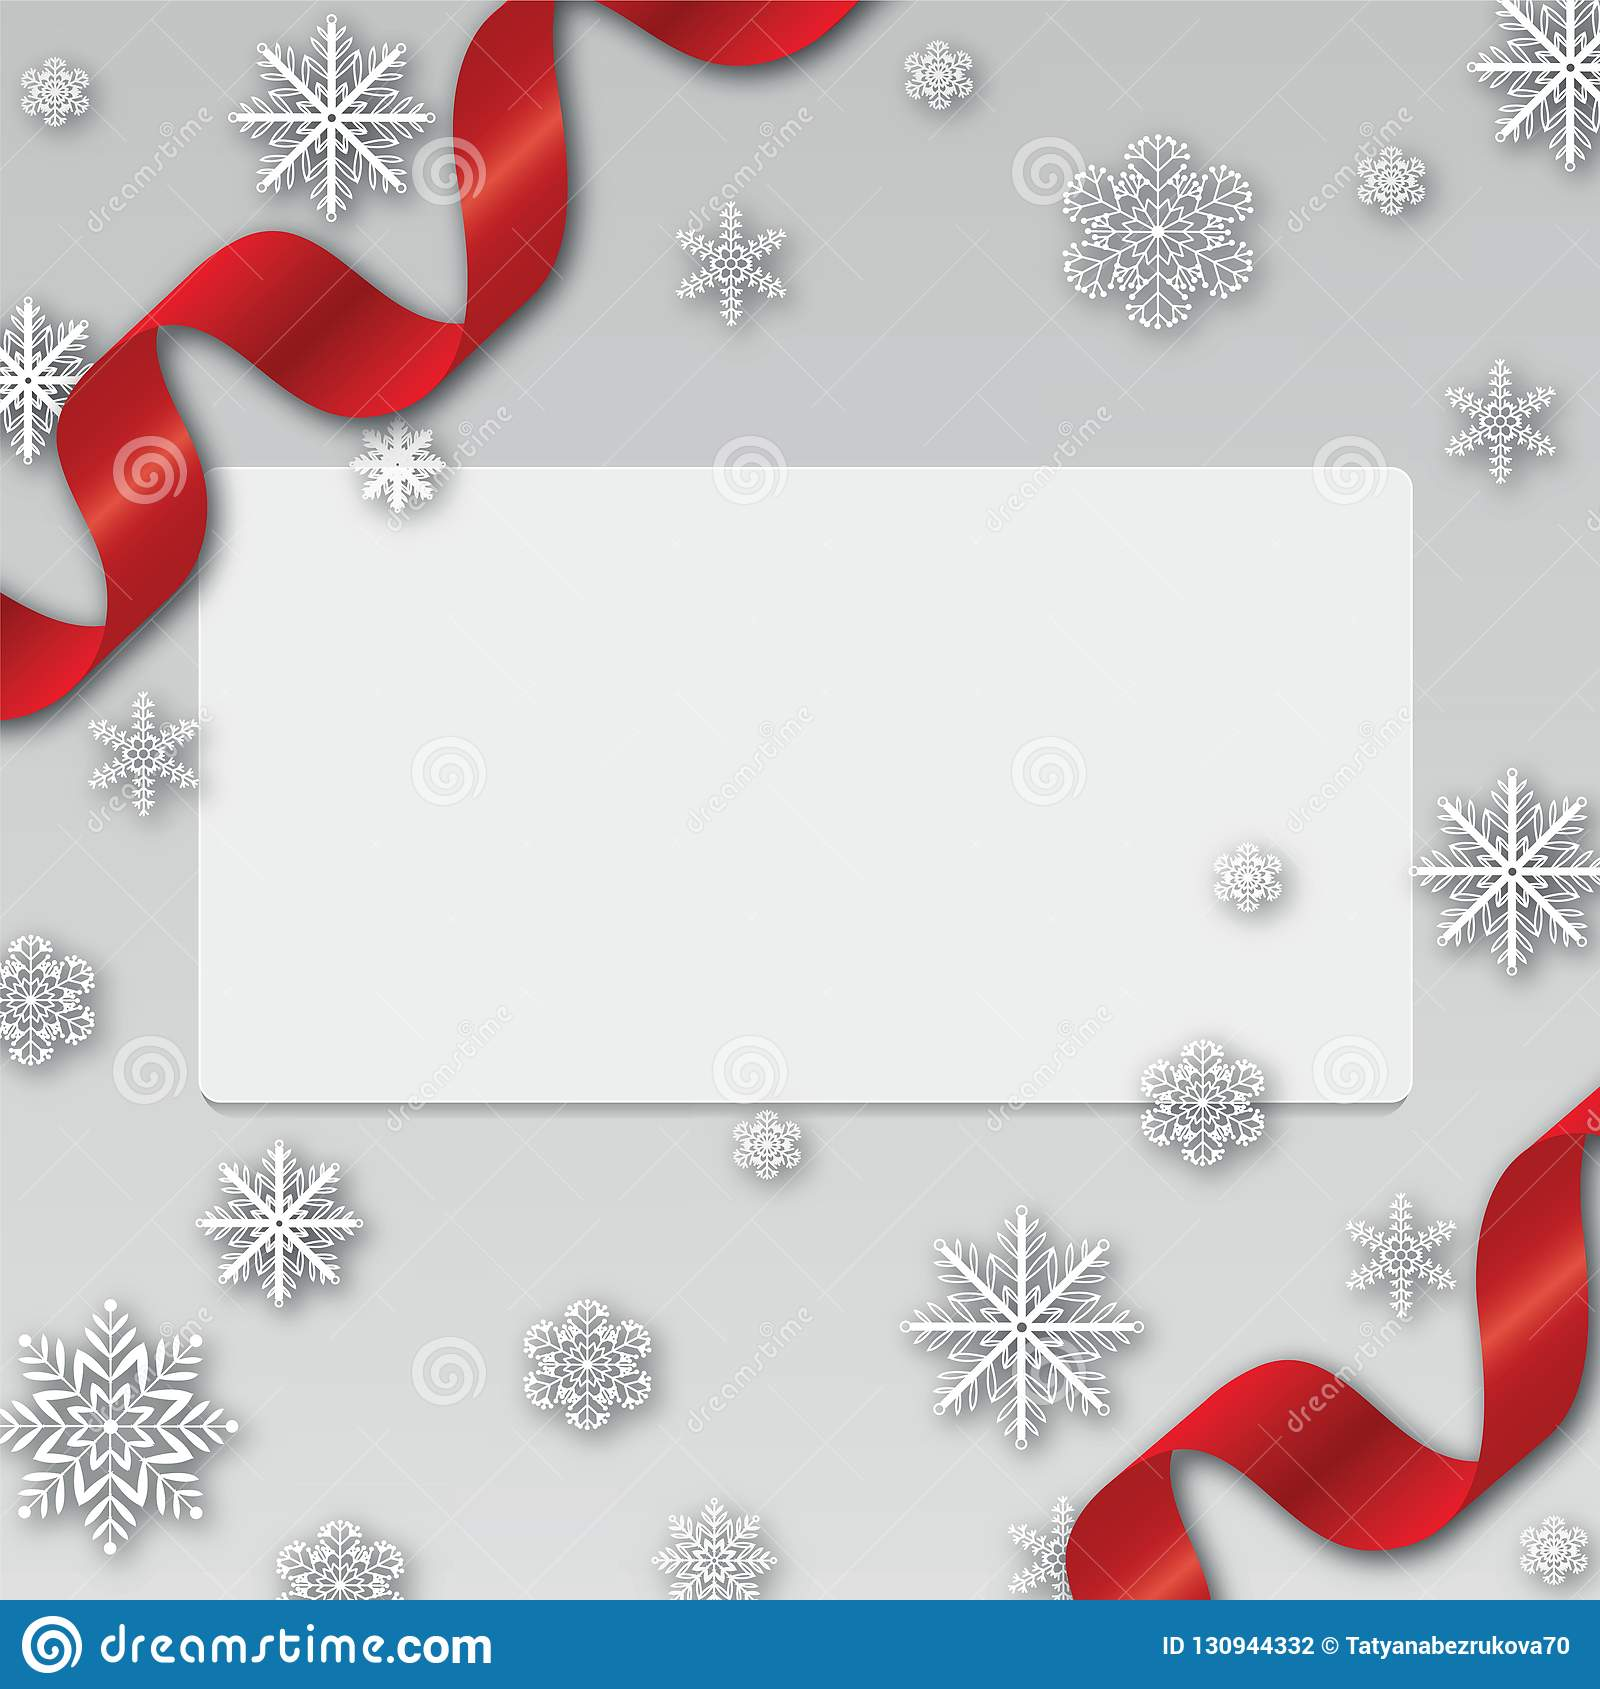 new year christmas background with snowflakes border and ribbon